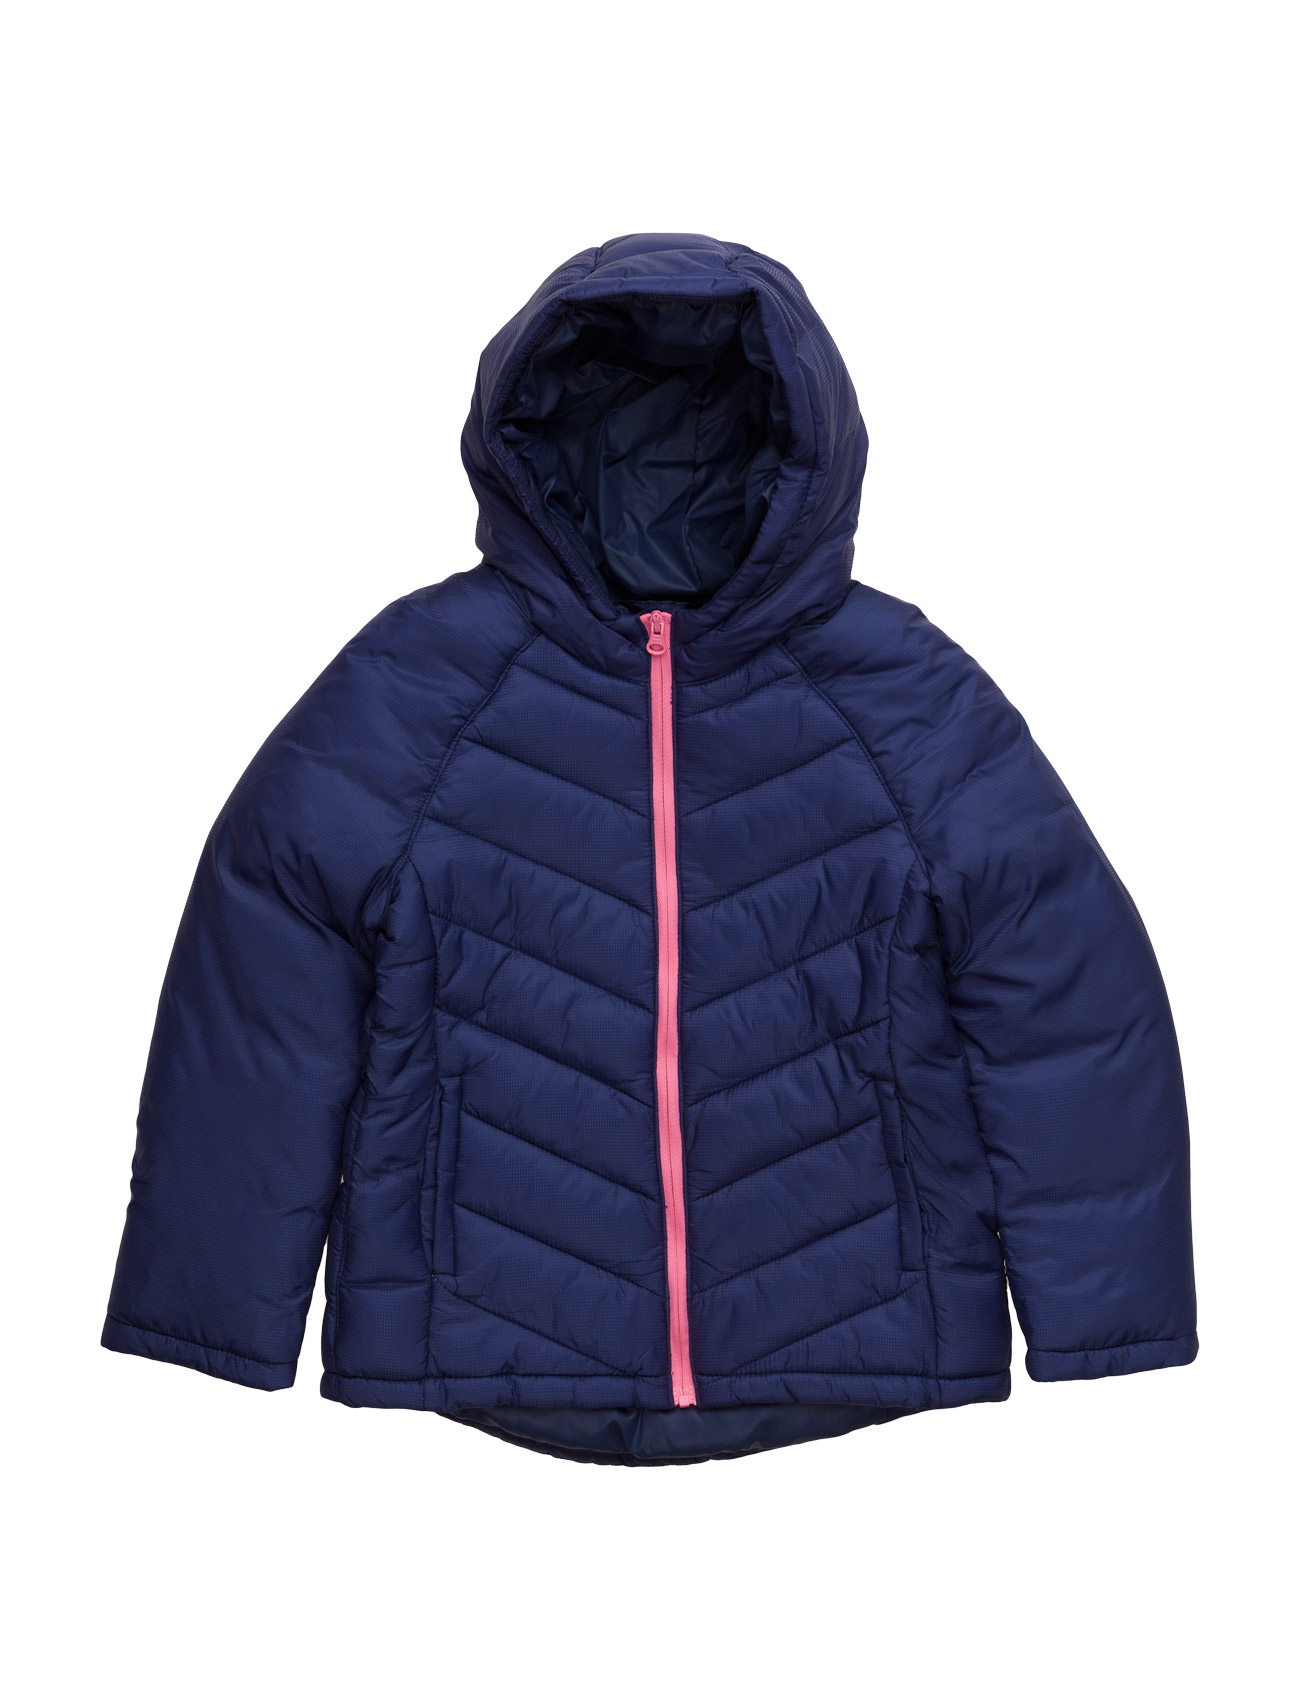 c588253903a Jacket United Colors of Benetton Jakker & Frakker til Børn i ...